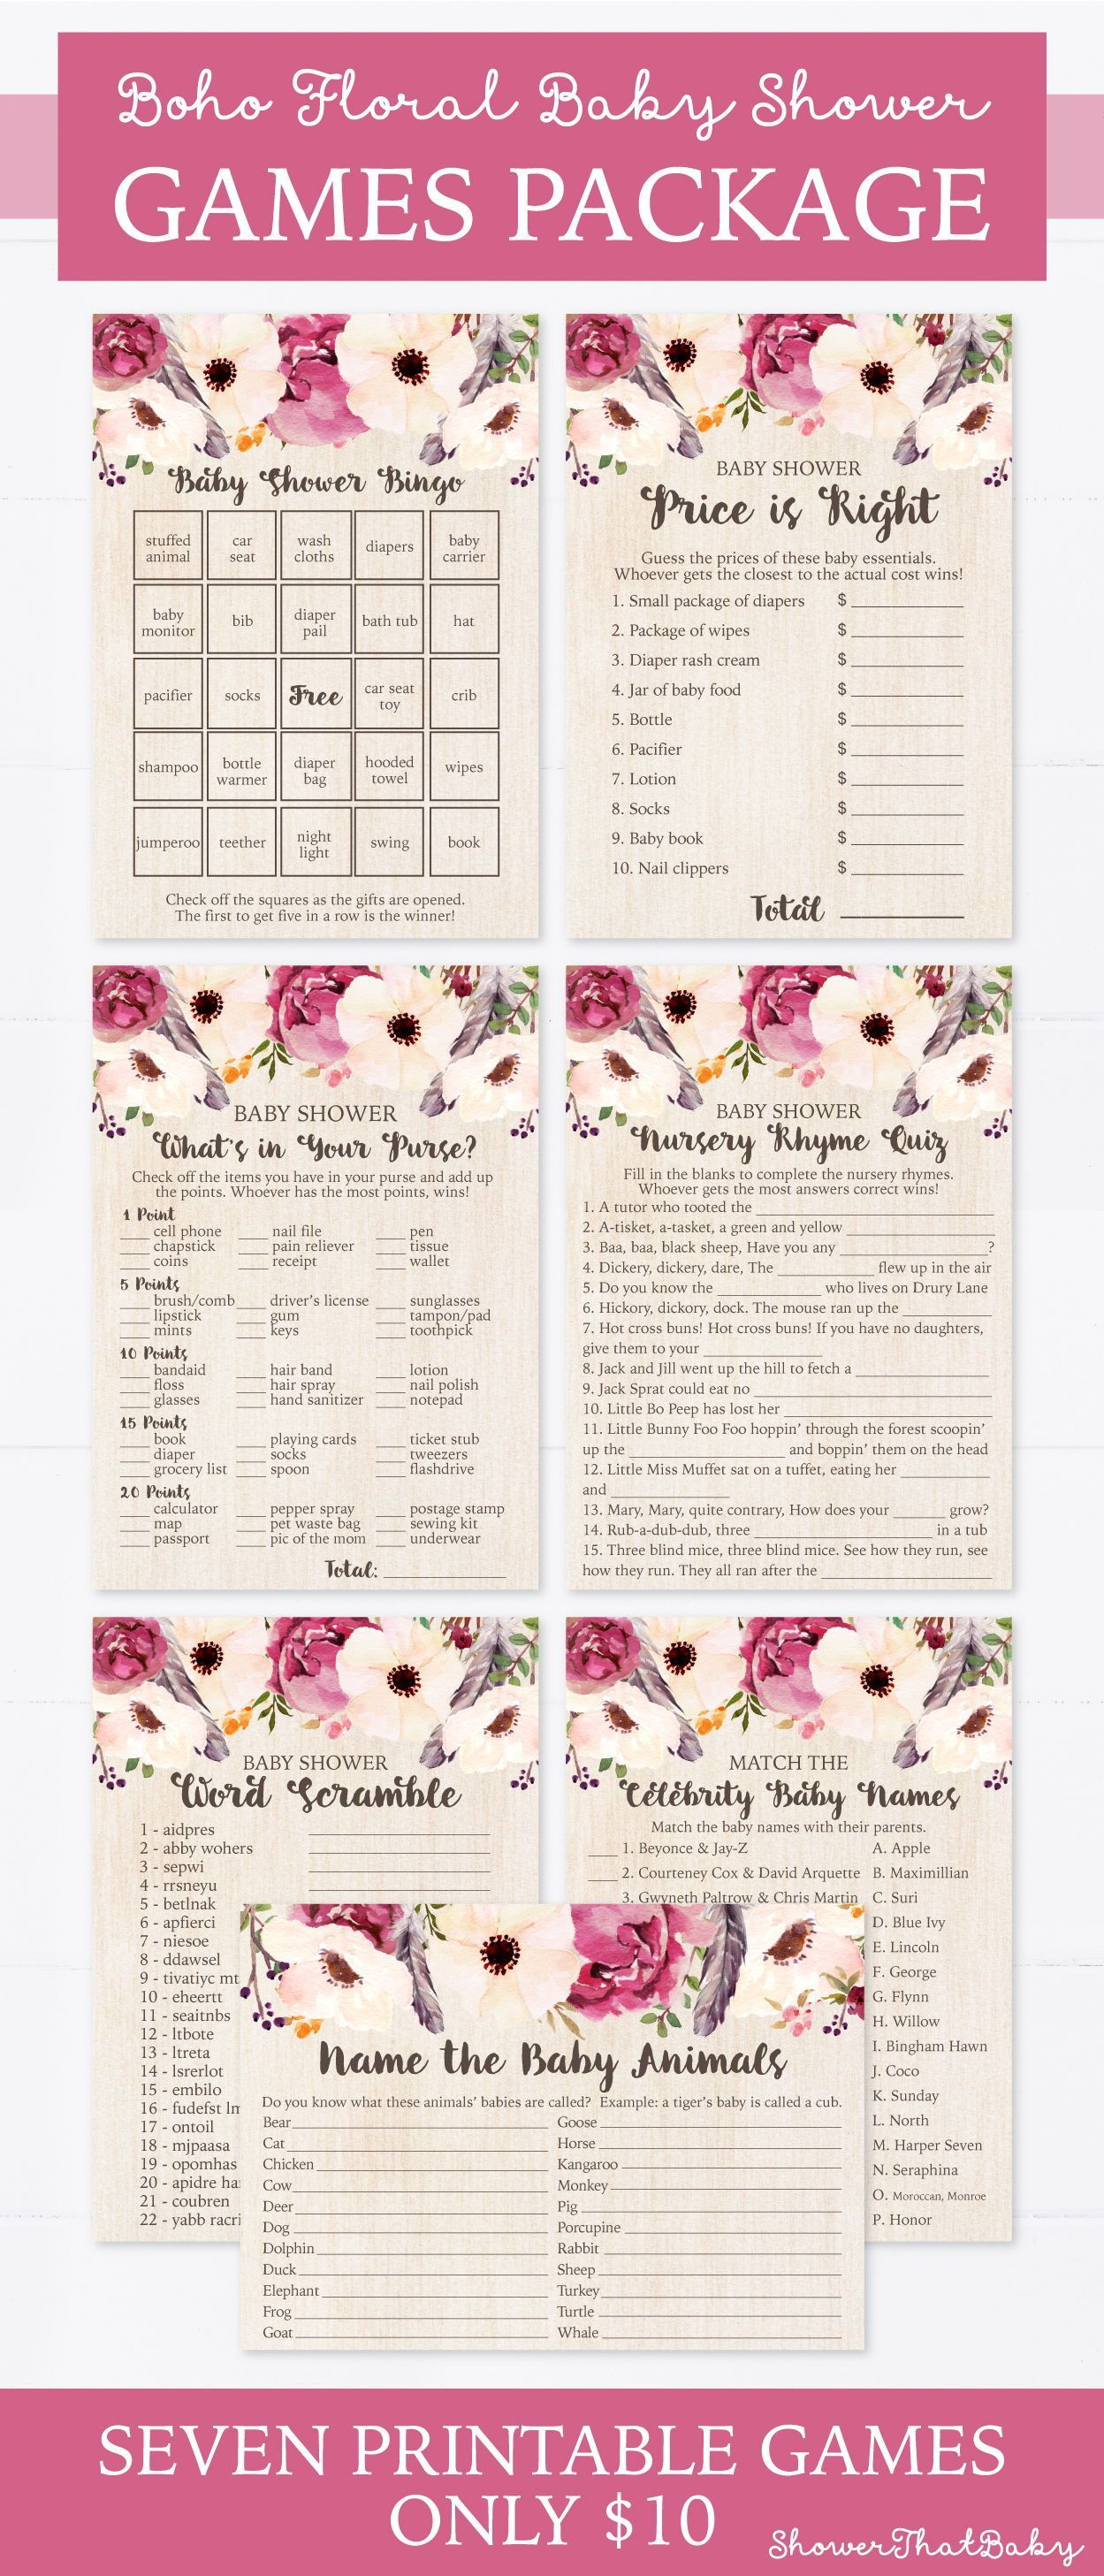 Boho Baby Shower Games Package  Seven Printable Games Bingo Price is Right Purse Game Nursery Rhyme  Bohemian Feathers Flowers 0043